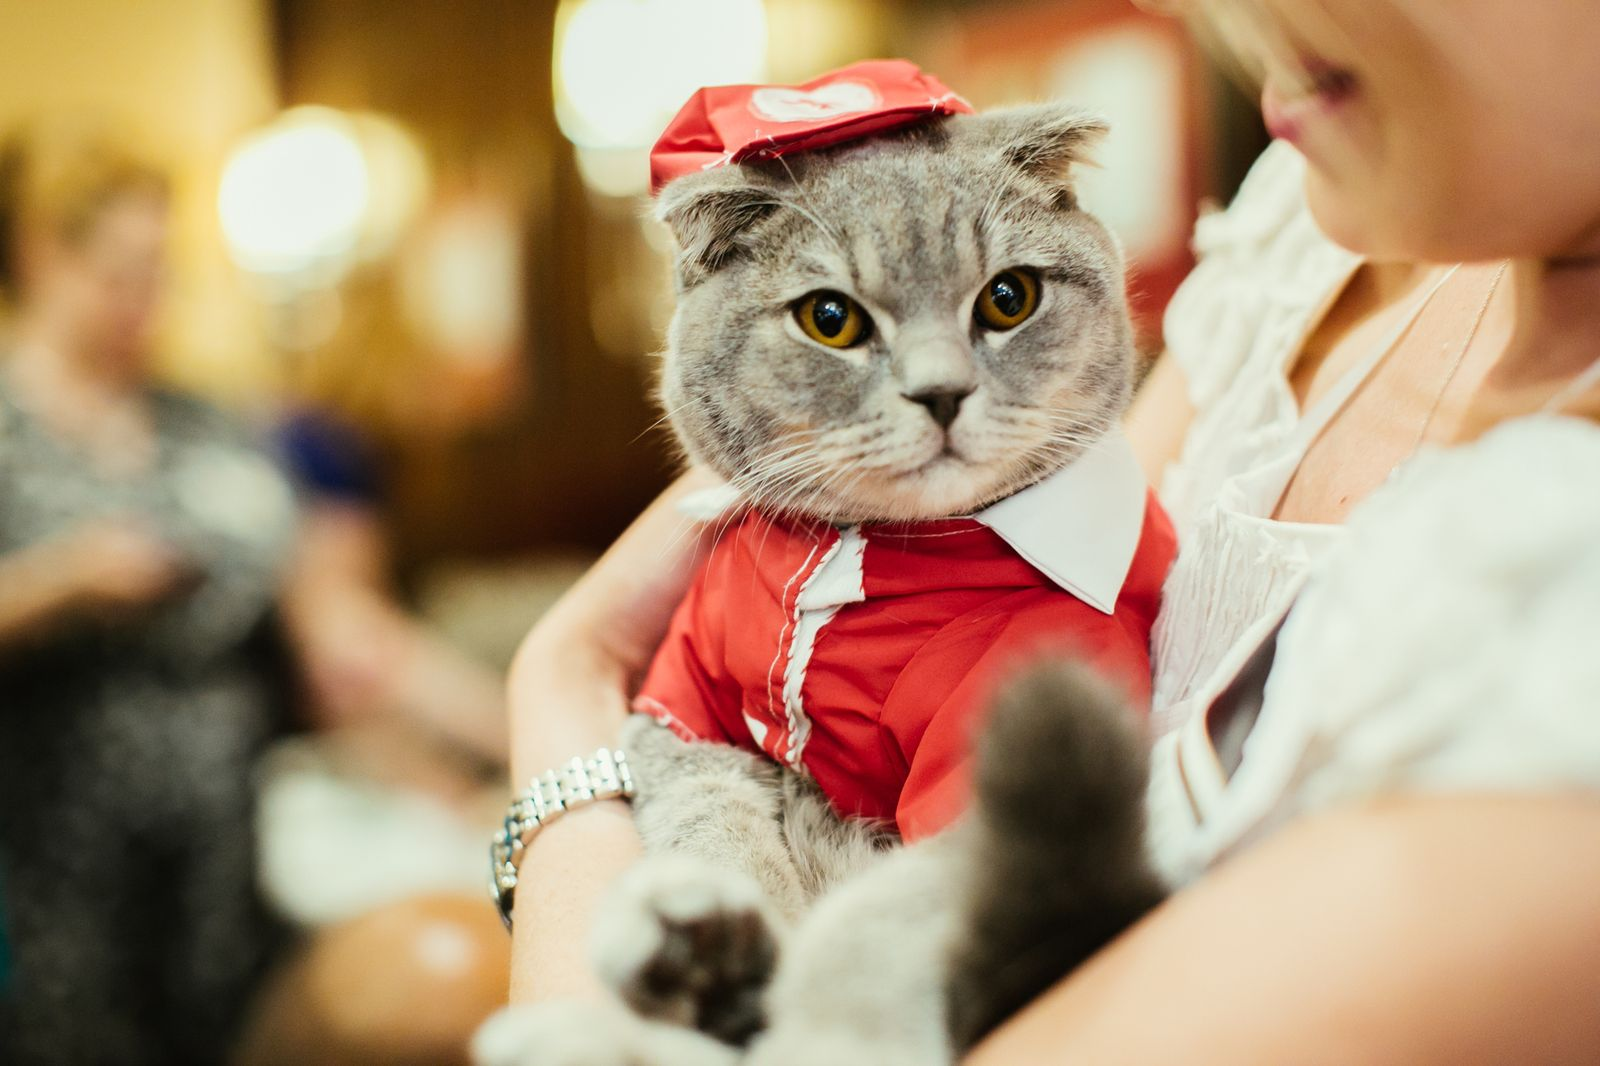 A Cat Café Is Opening in Brooklyn This Weekend